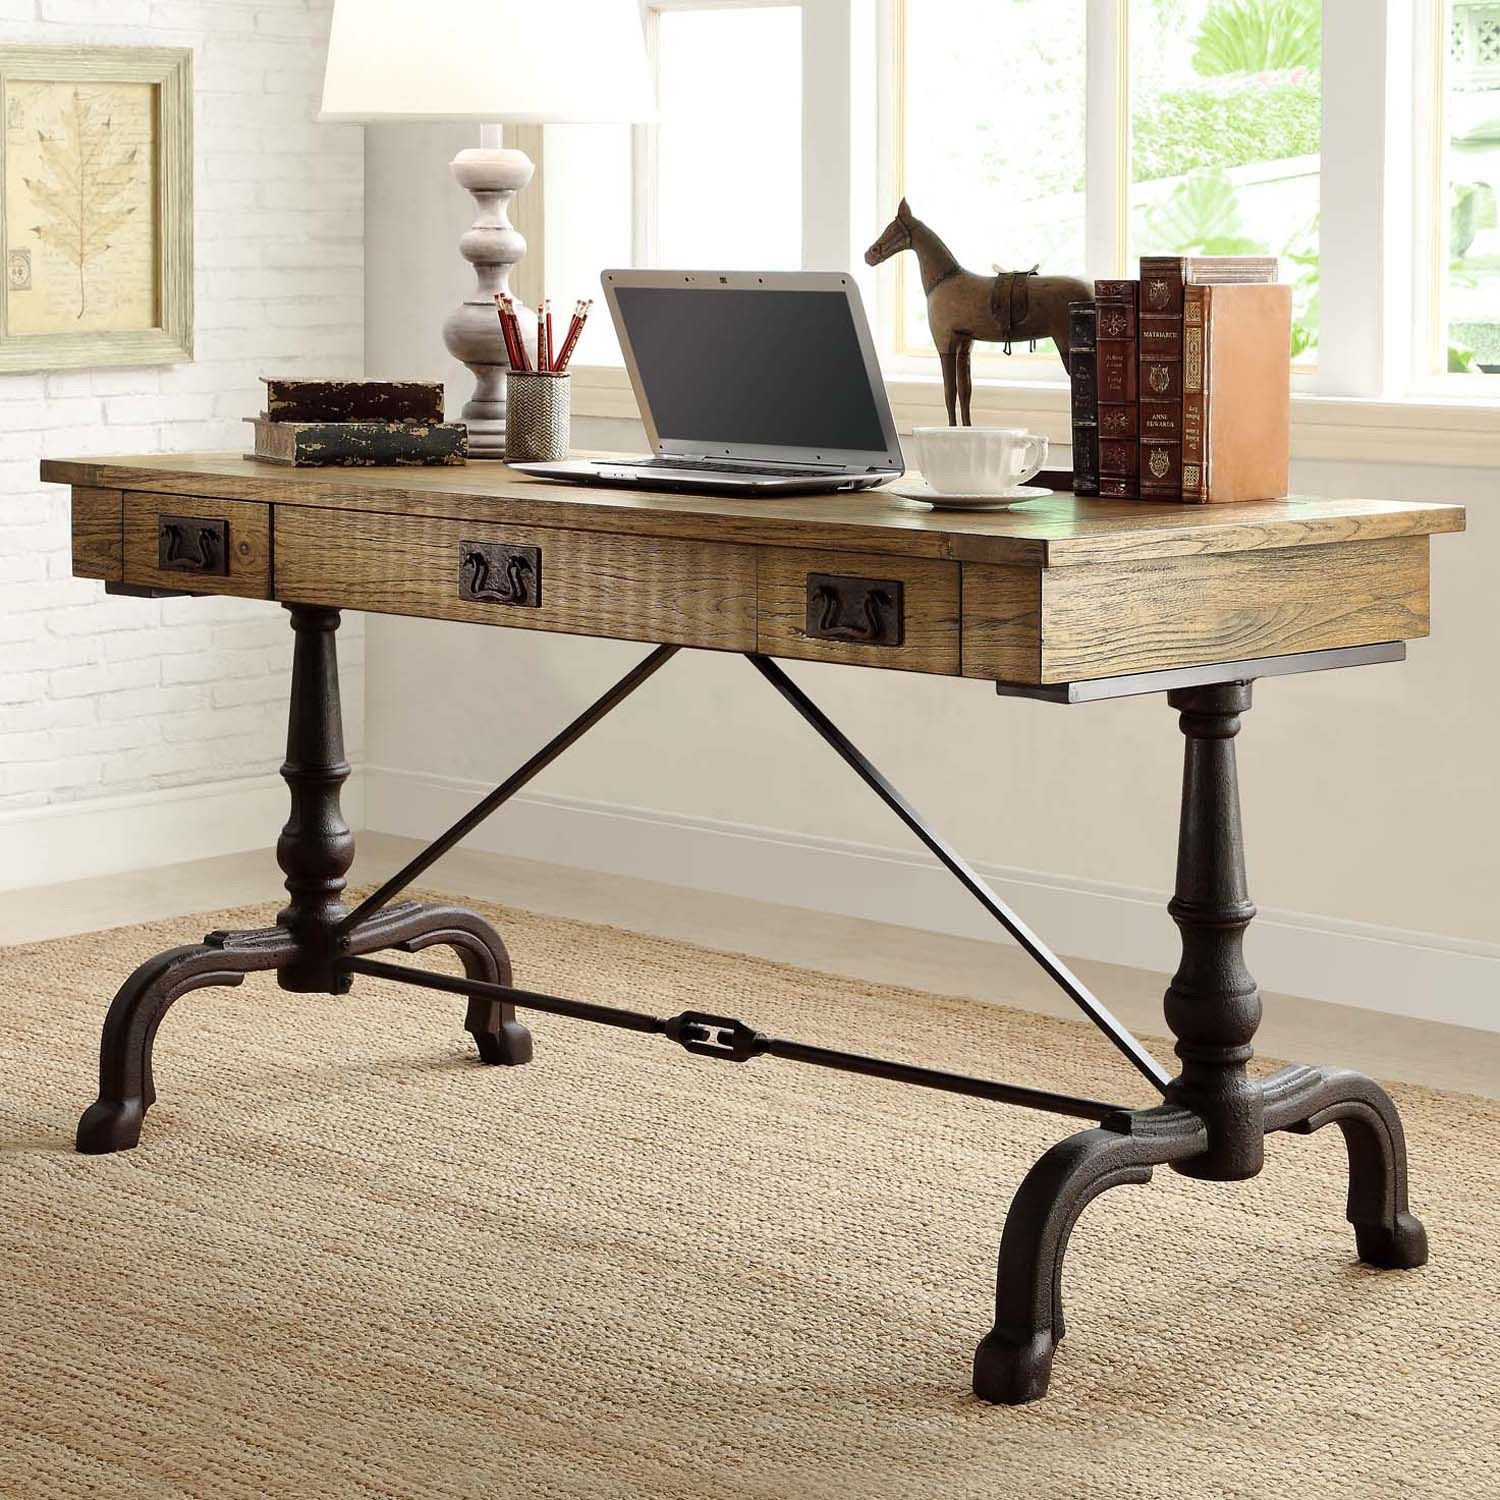 Easy Top Flannery Desk With Antiqued Metal Base Sam S Club